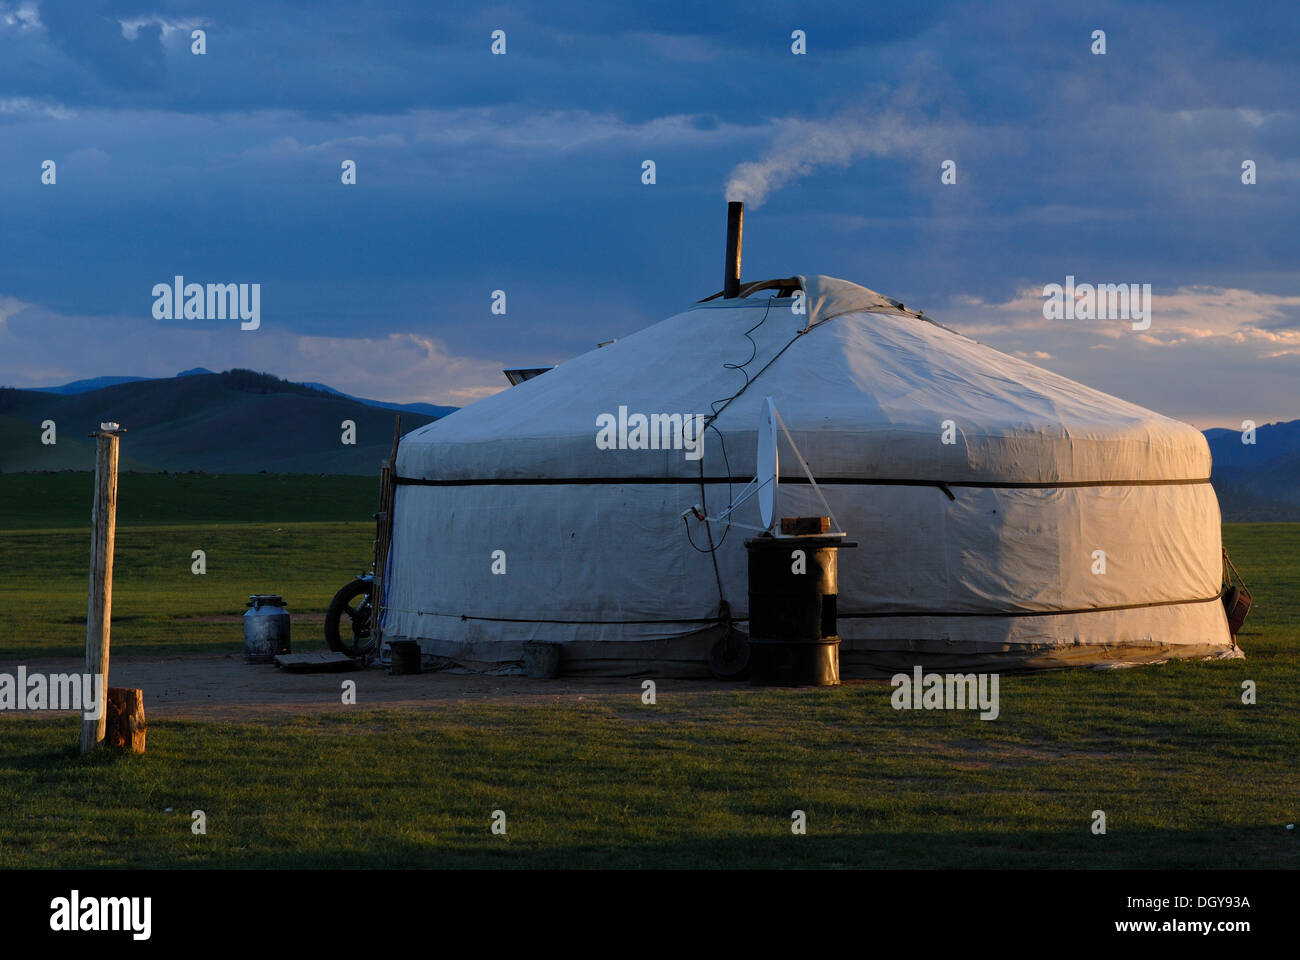 Mongolian ger or yurt a round tent in the evening light with a smoking furnace in grassland at Orkhon Waterfall & Mongolian ger or yurt a round tent in the evening light with a ...